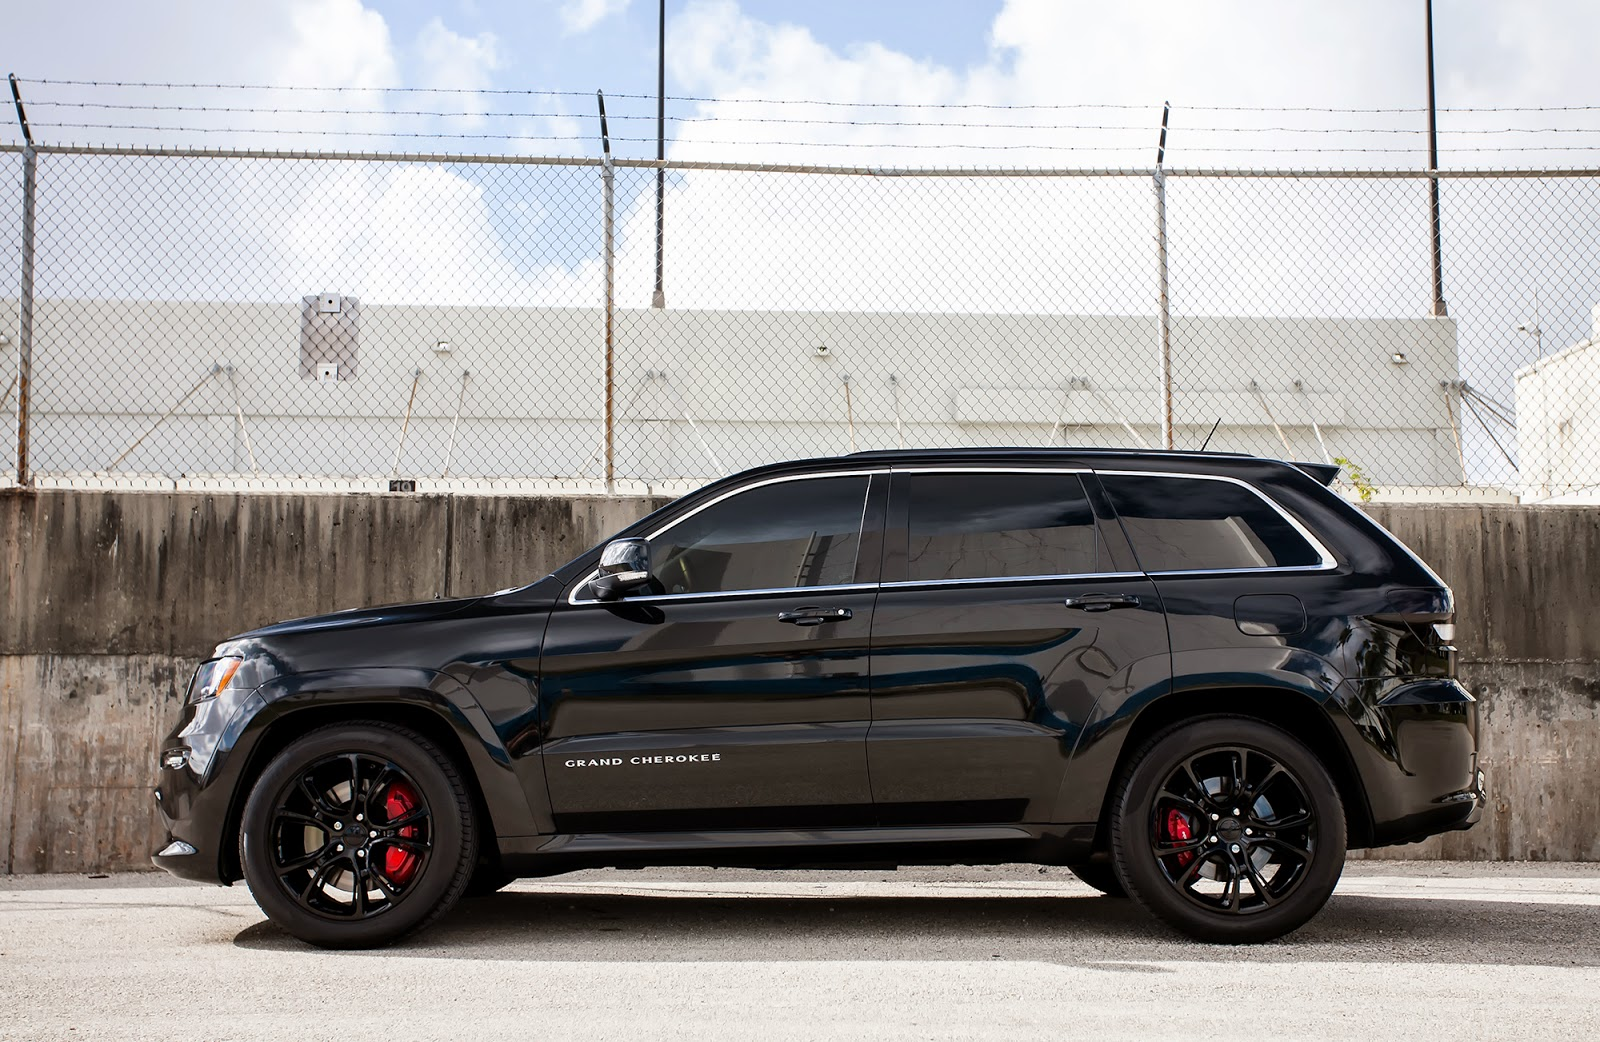 motoring jeep grand cherokee srt8 on oem wheels supercars show. Cars Review. Best American Auto & Cars Review